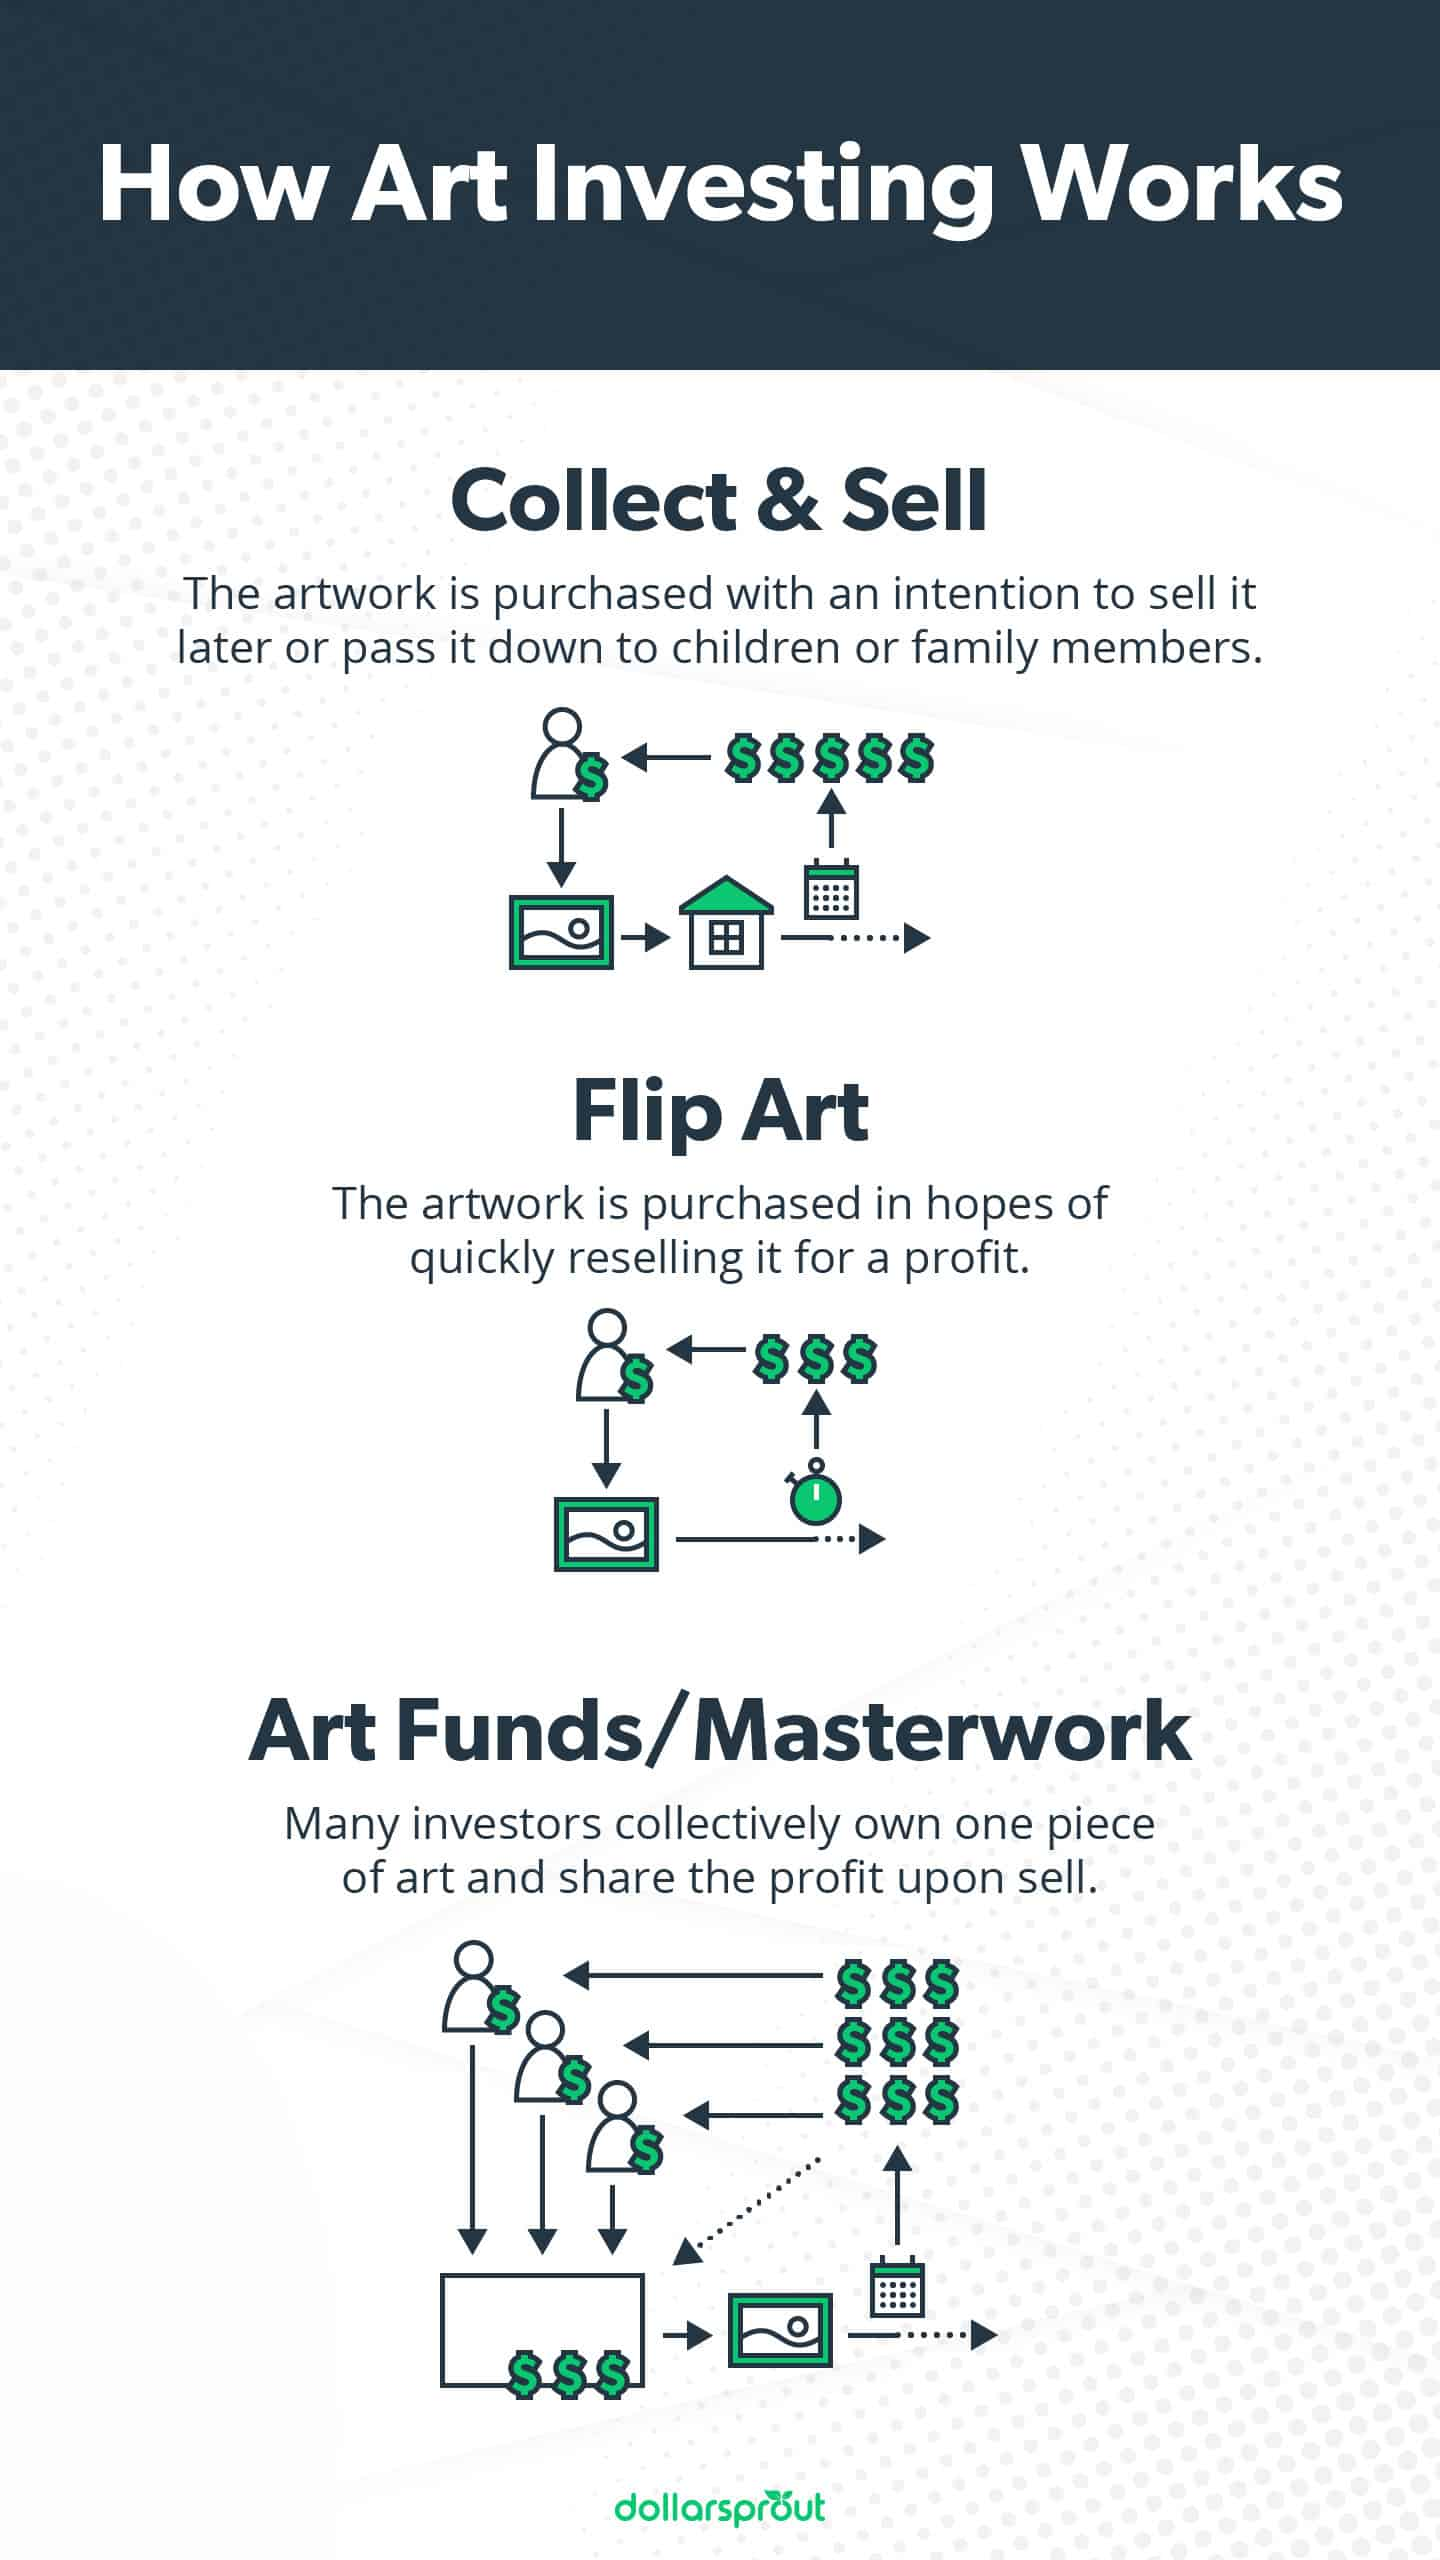 How Art Investing Works